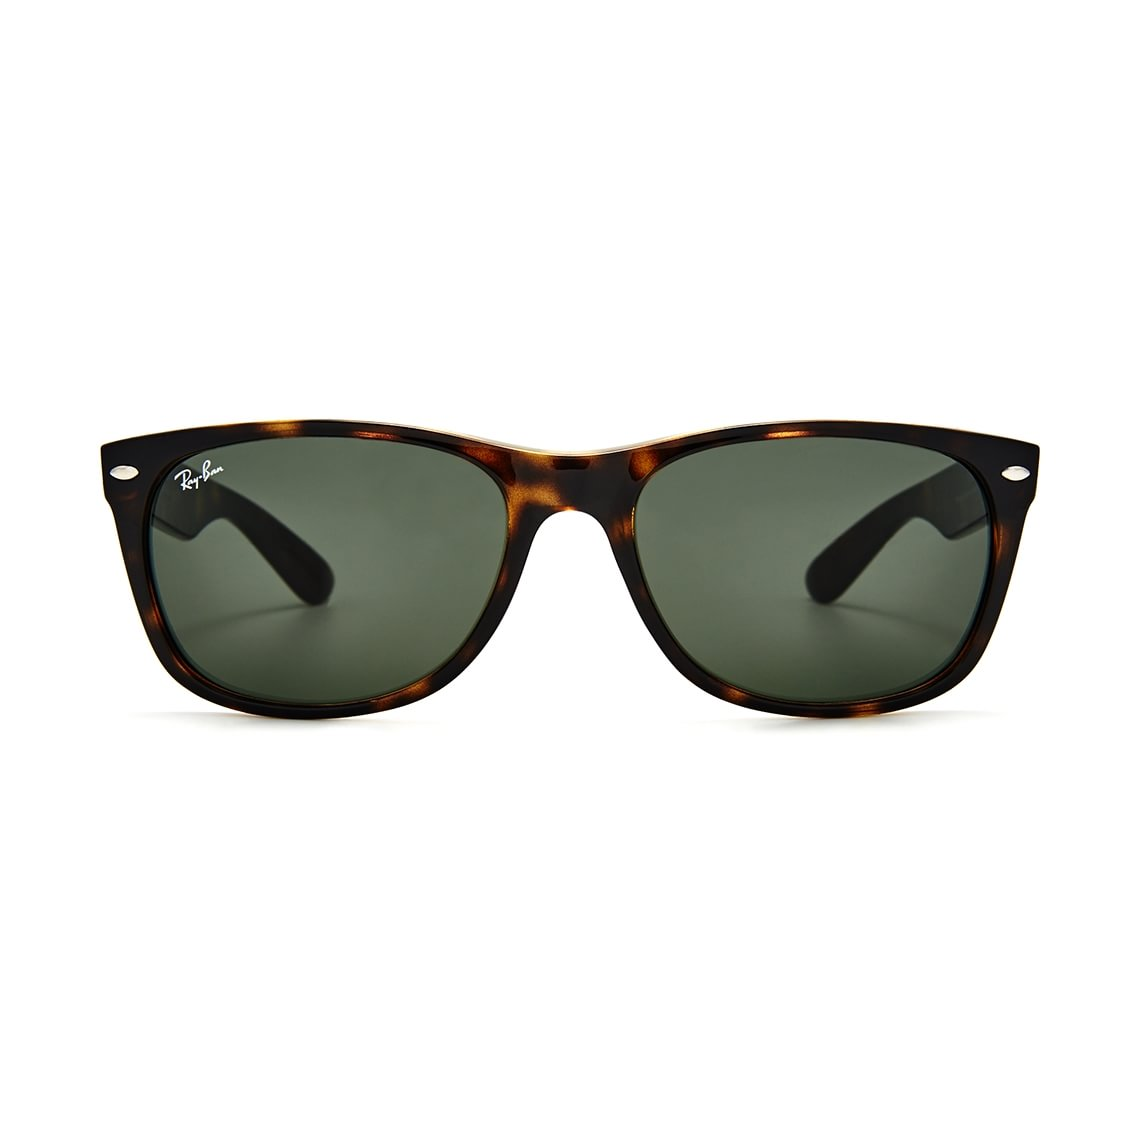 Ray-Ban New Wayfarer RB2132 902 58